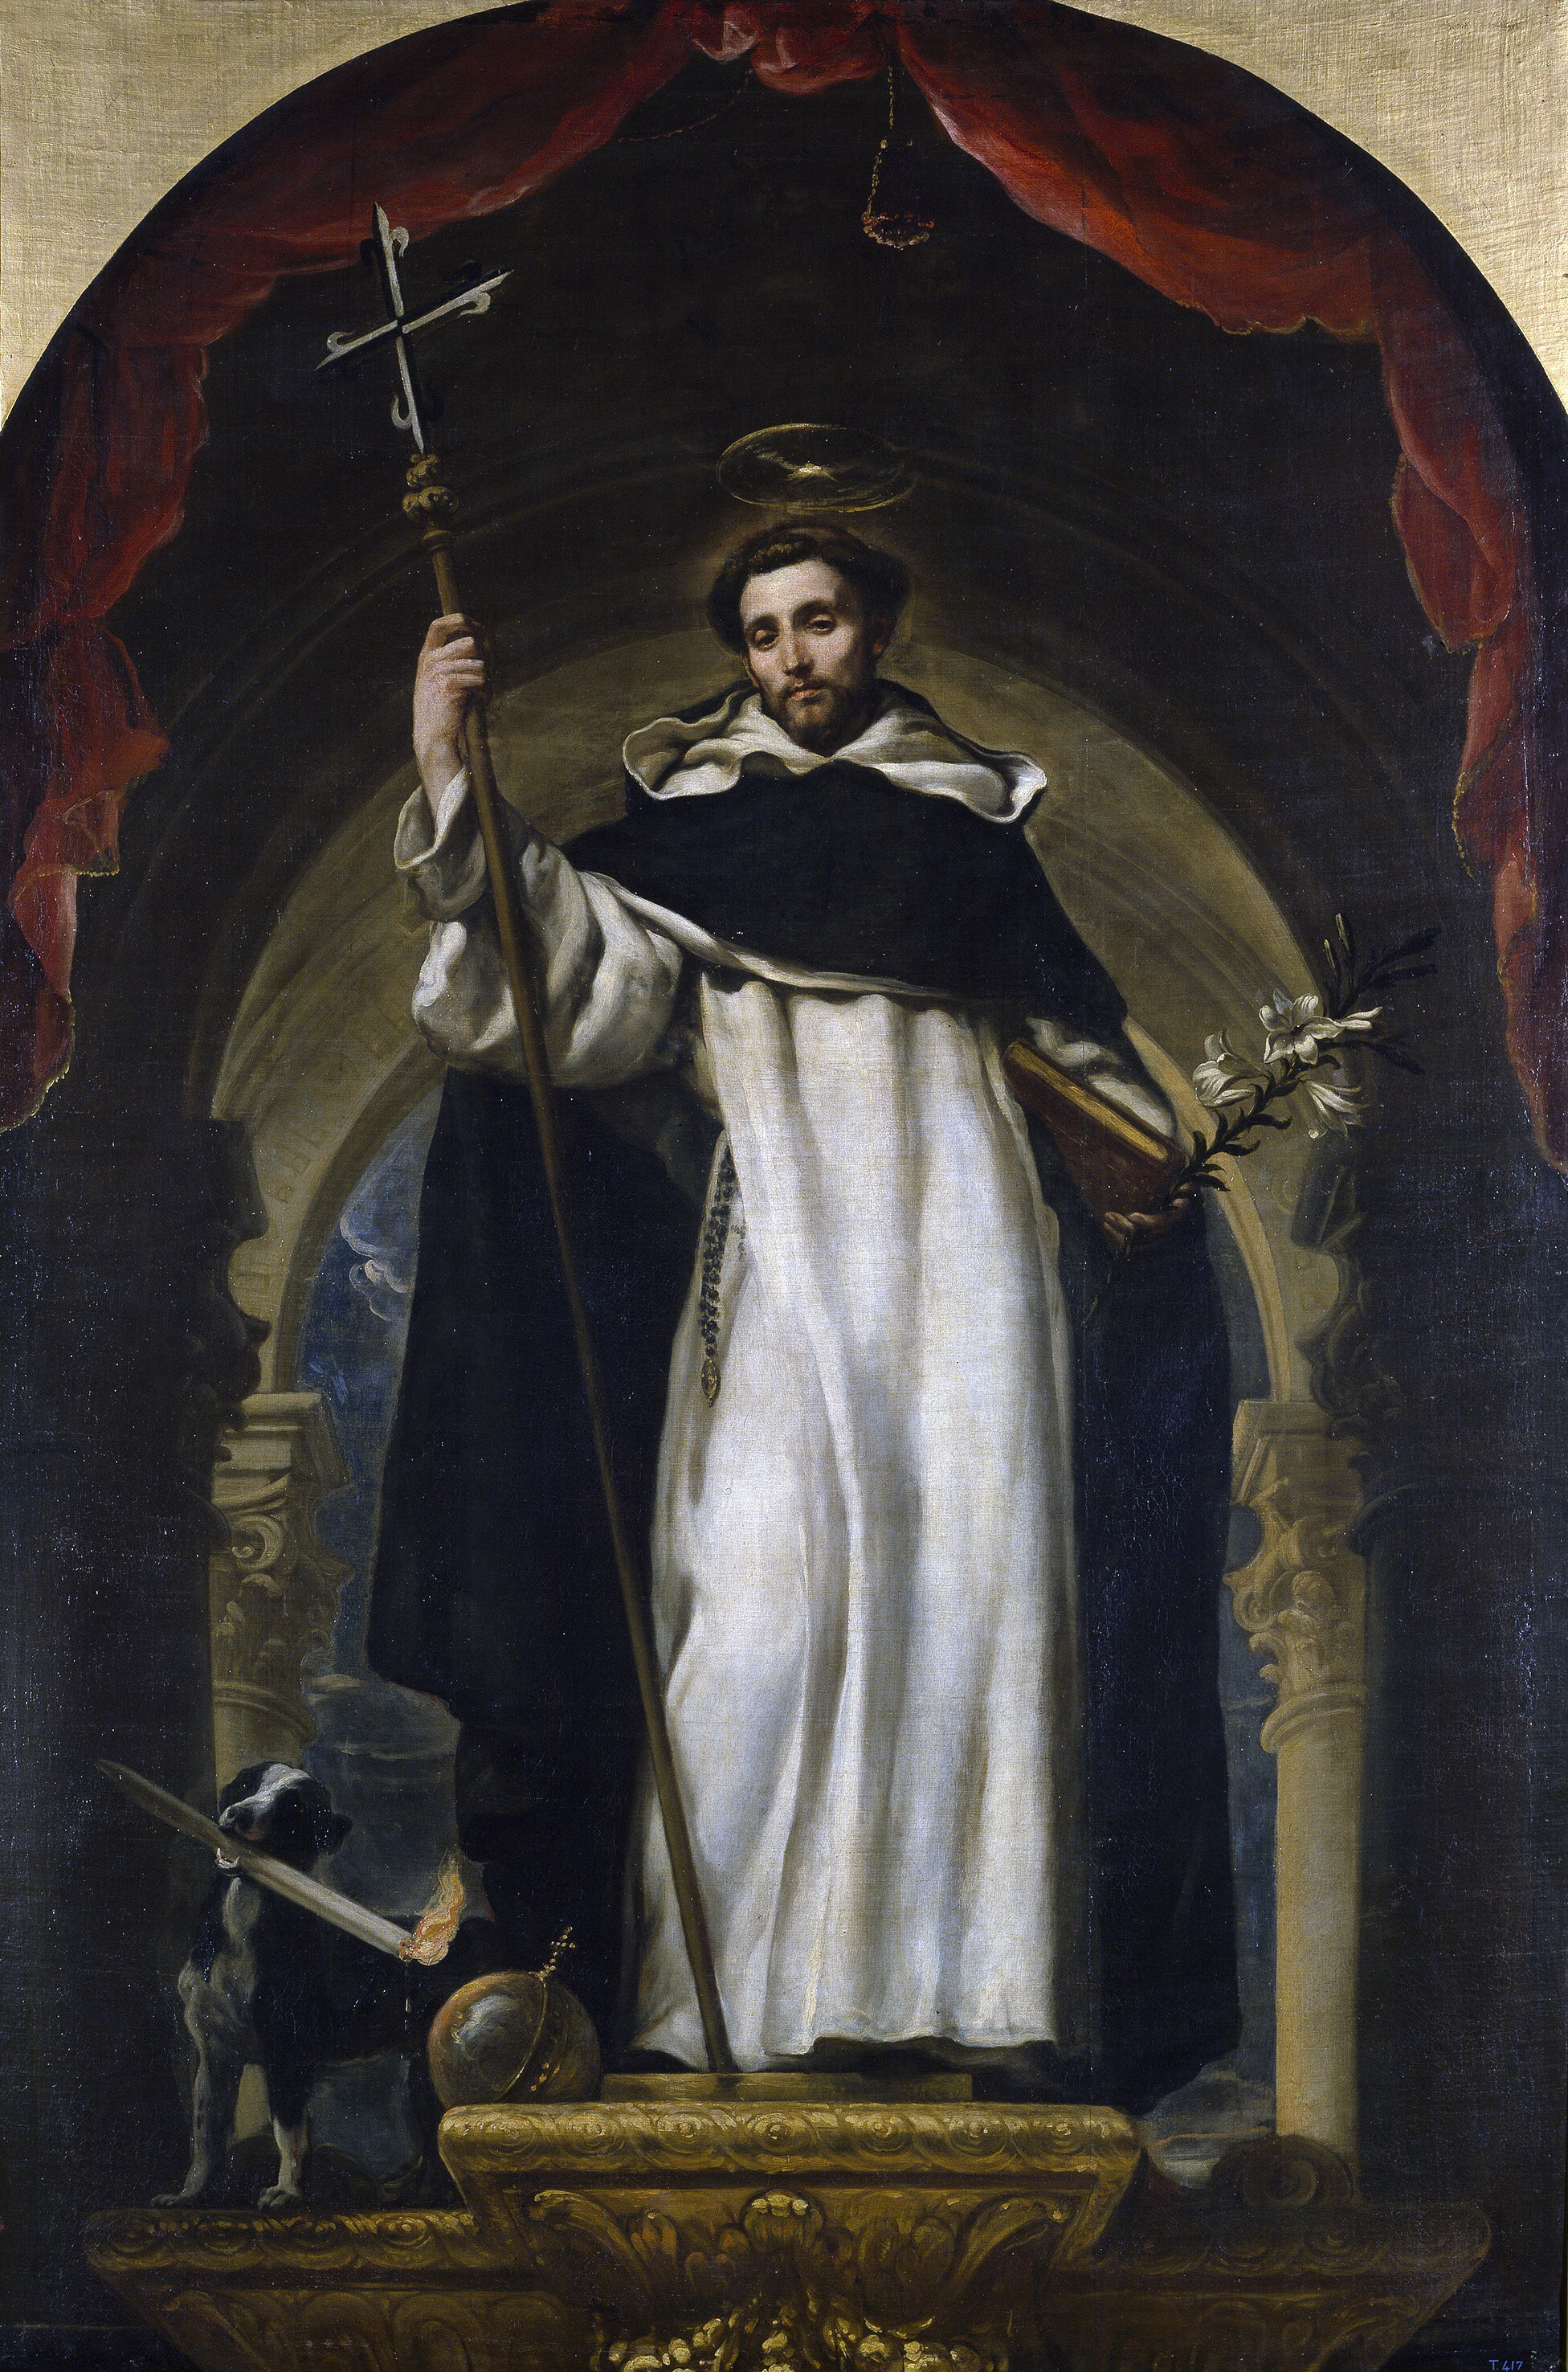 Image credit: Saint Dominic's portrait by the Spanish painter Claudio Coello in 1670 (source: Wikipedia)